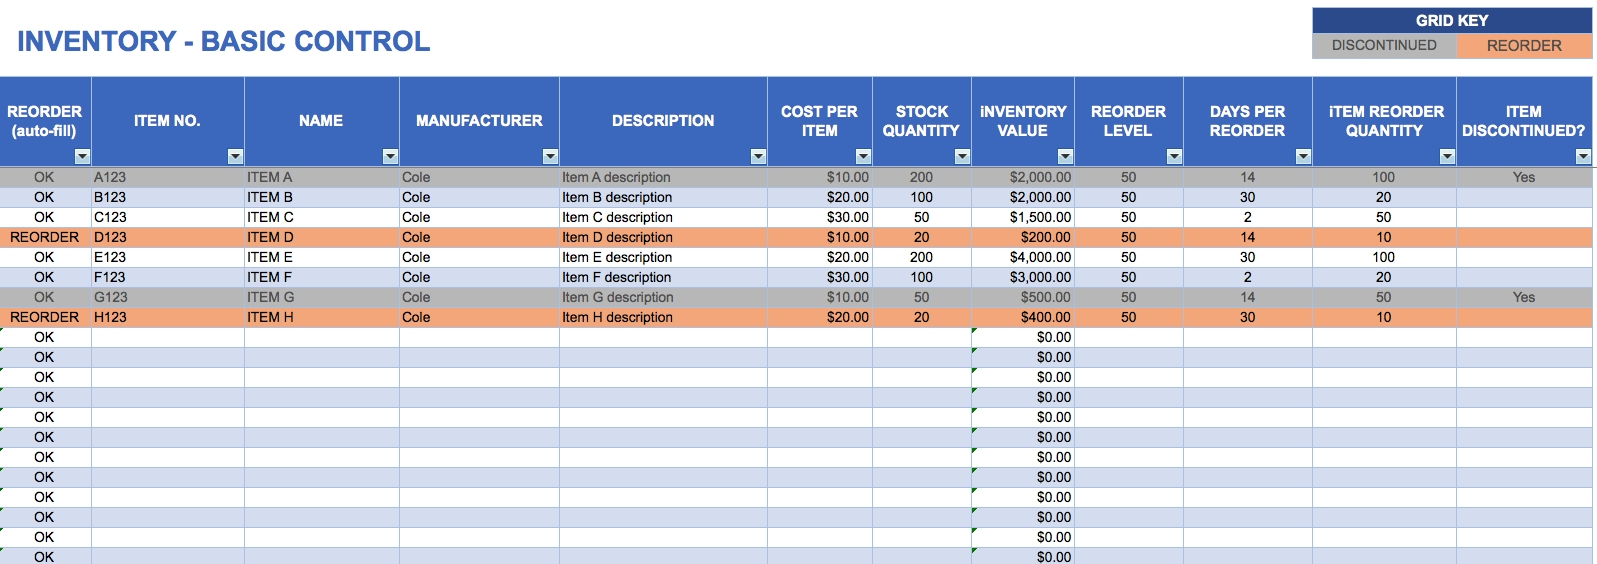 Free Excel Inventory Templates And Stock Management Software In Inside Inventory Control Software In Excel Free Download